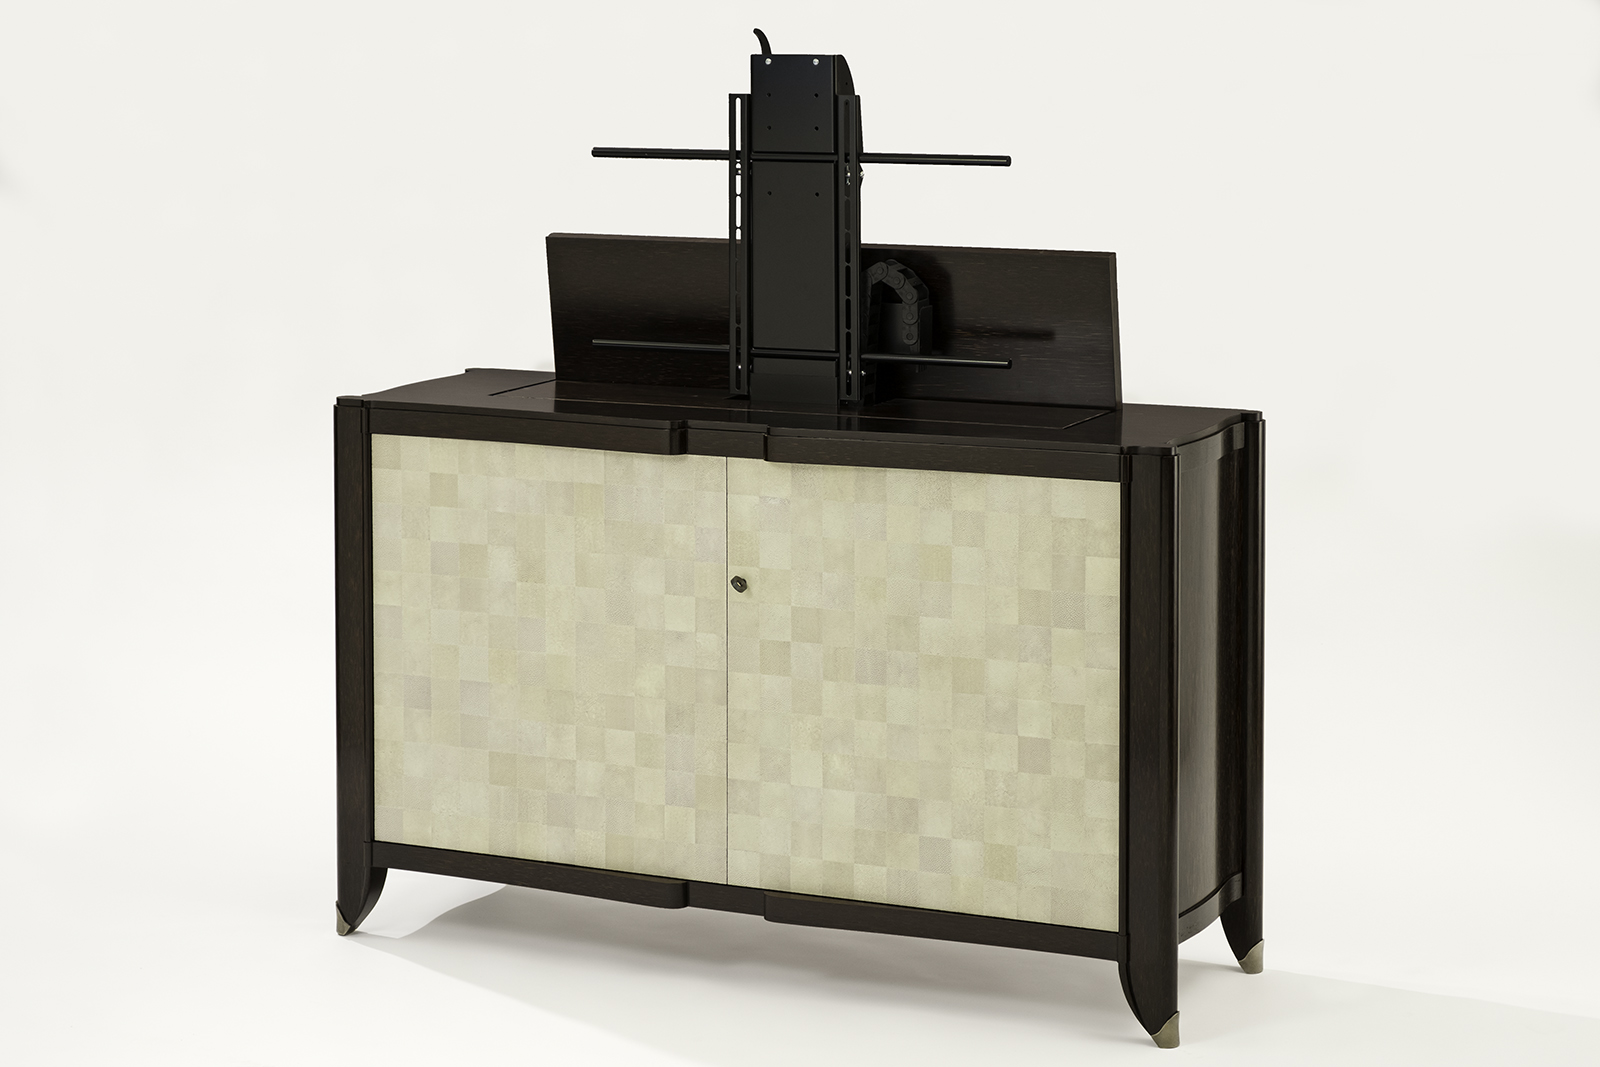 shagreen palmwood tv lift cabinet. Black Bedroom Furniture Sets. Home Design Ideas